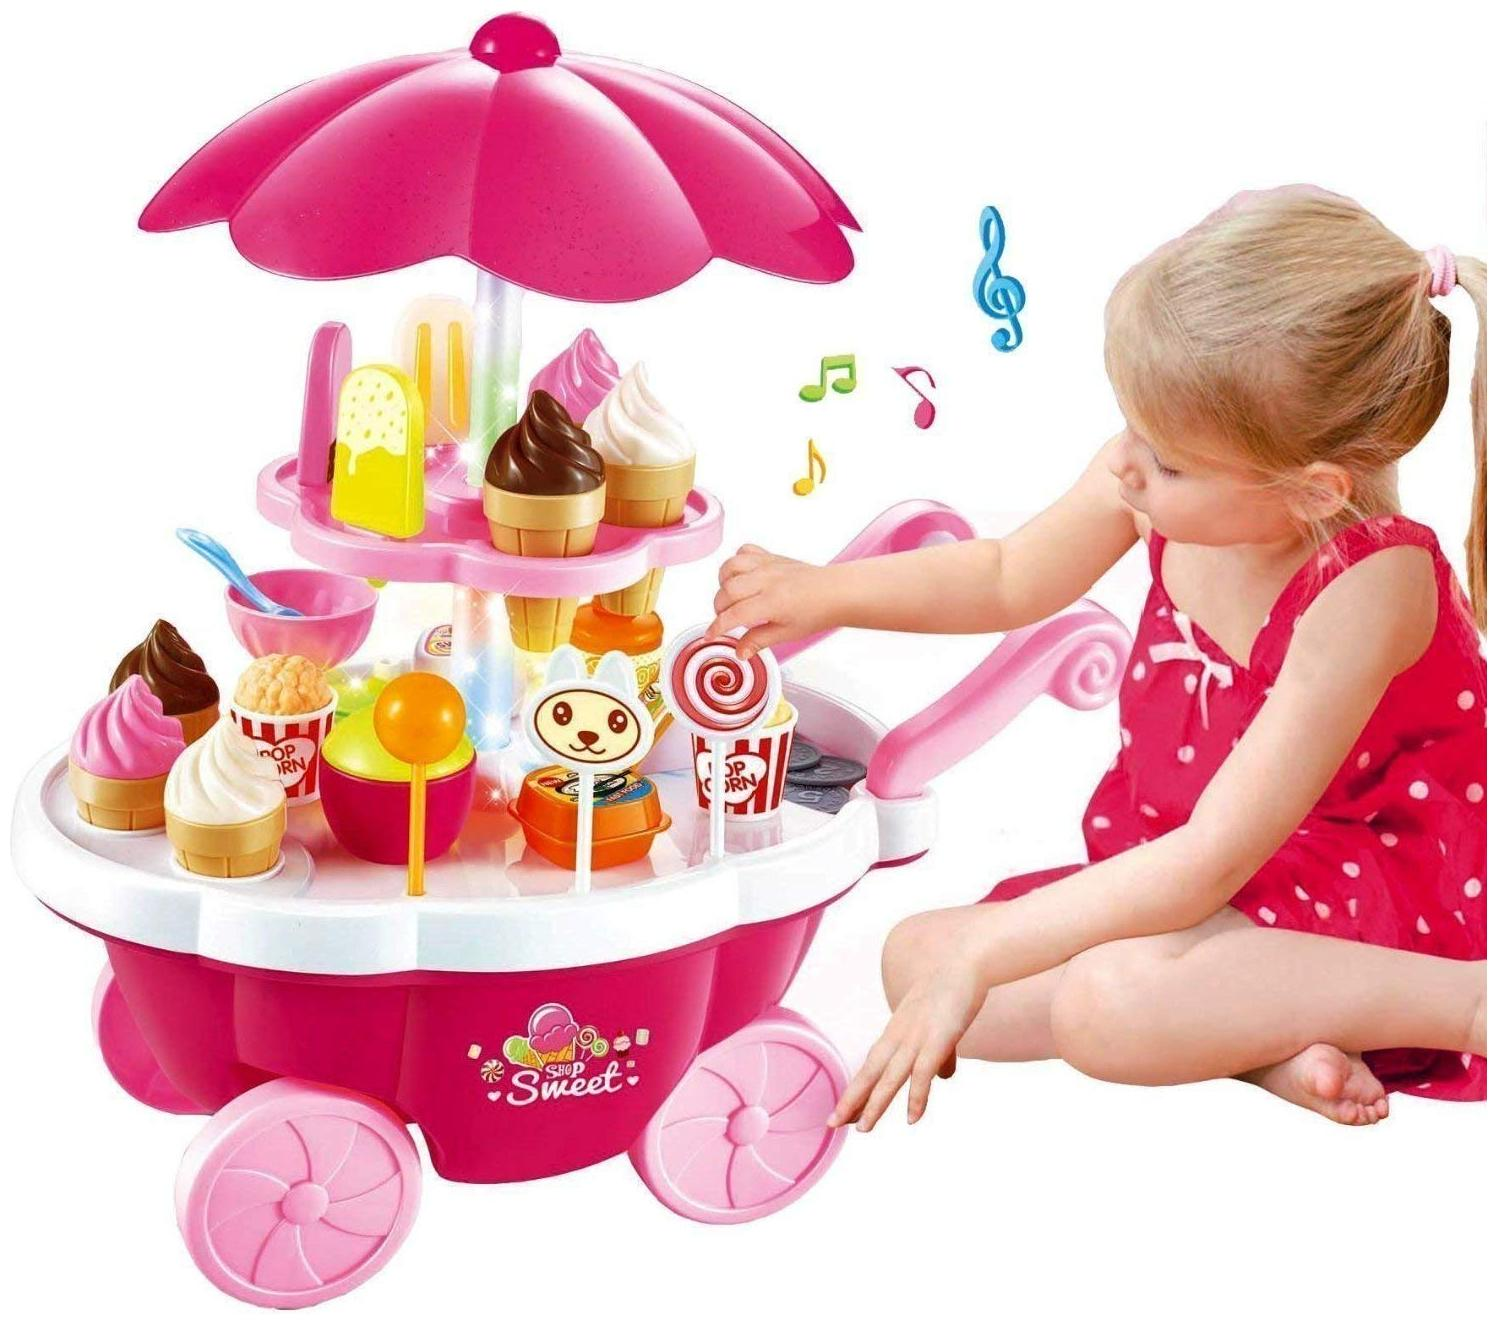 New Toy chehar enterprise Ice Cream Kitchen Play Cart Kitchen Set Toy with Lights and Music, pink (color may be vary)